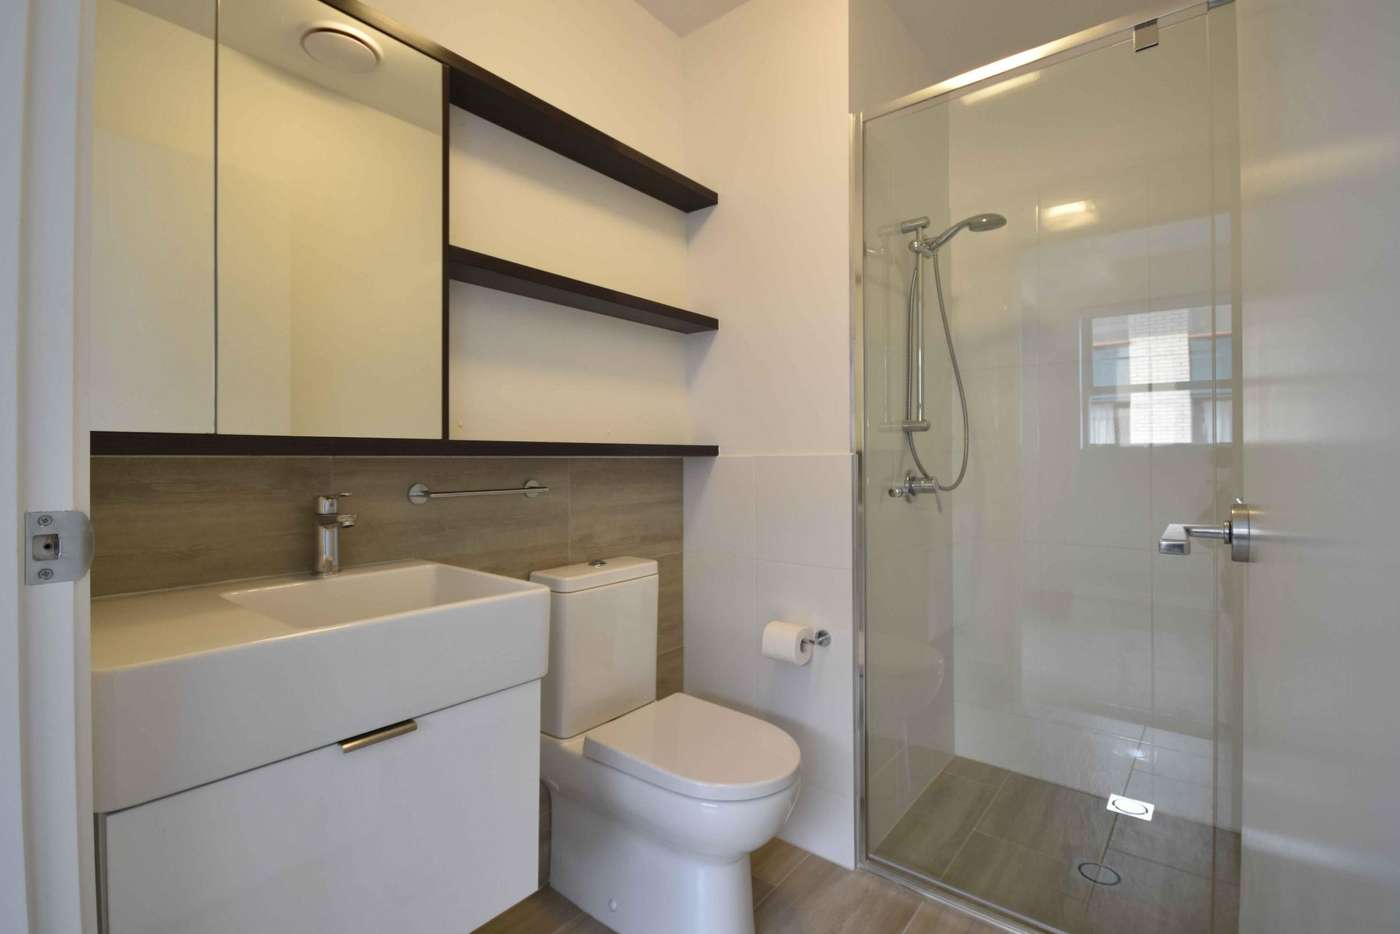 Sixth view of Homely apartment listing, 26/55 Princess St, Kangaroo Point QLD 4169